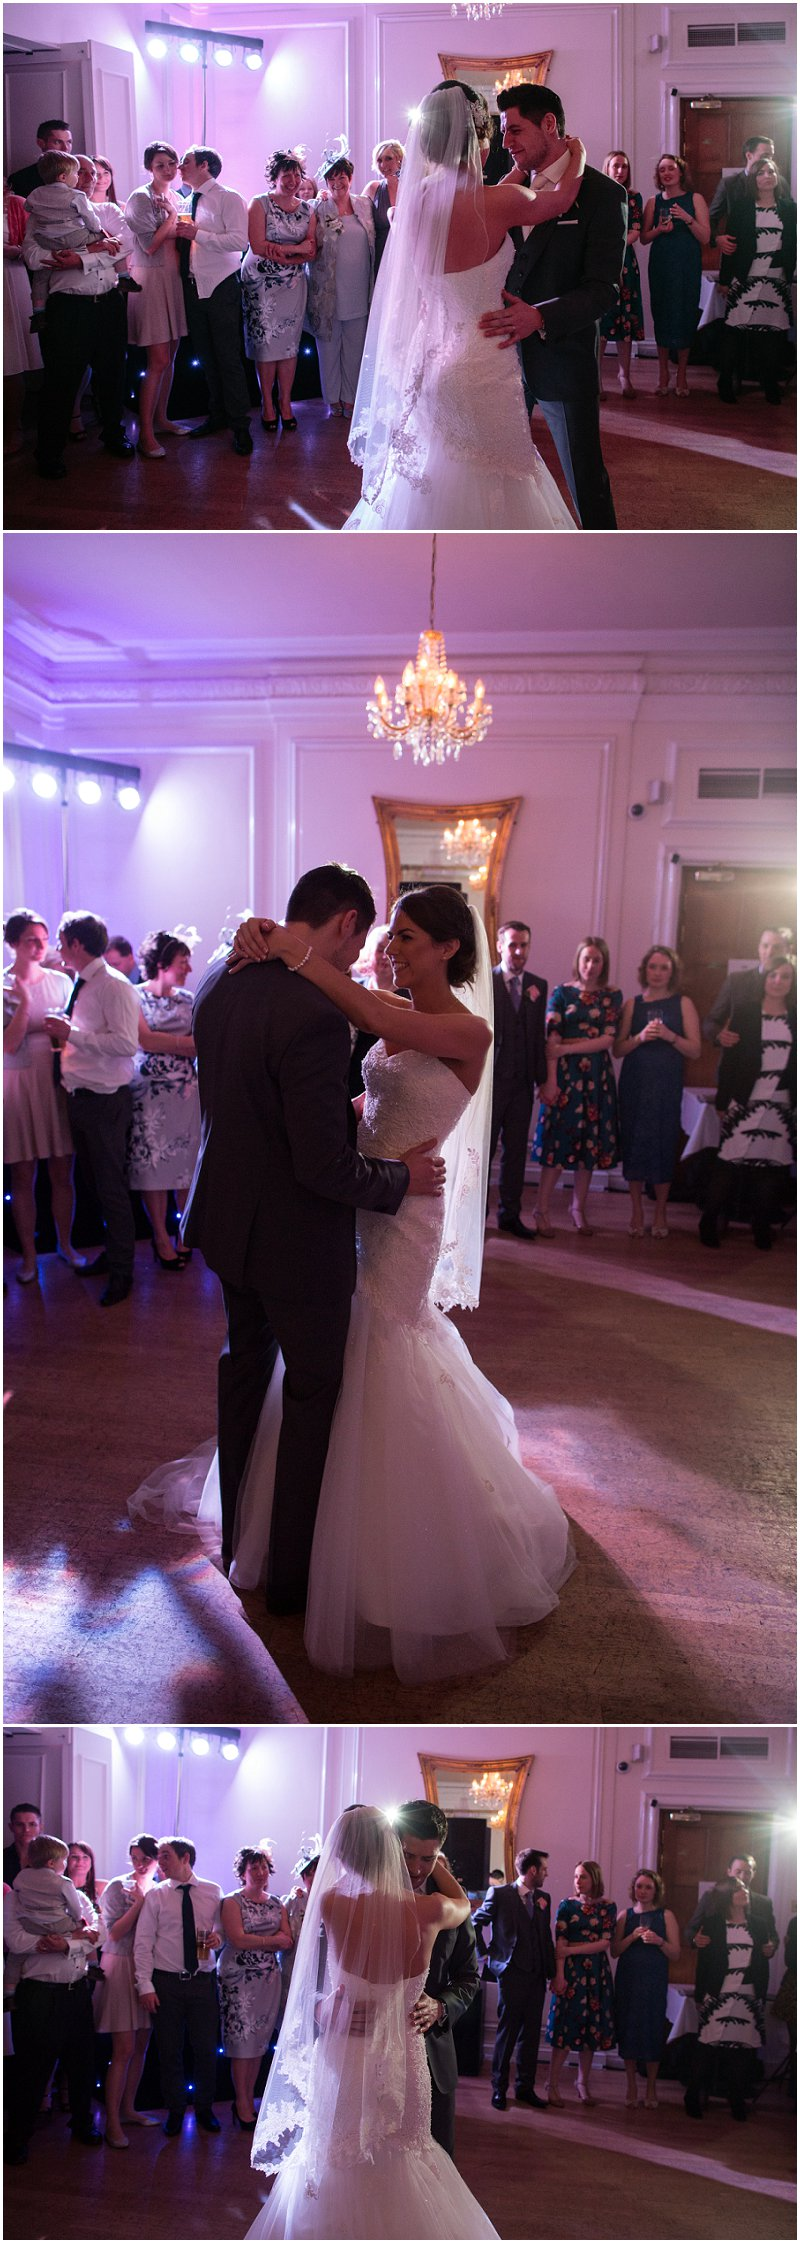 Evening dancing at West Tower Wedding Venue